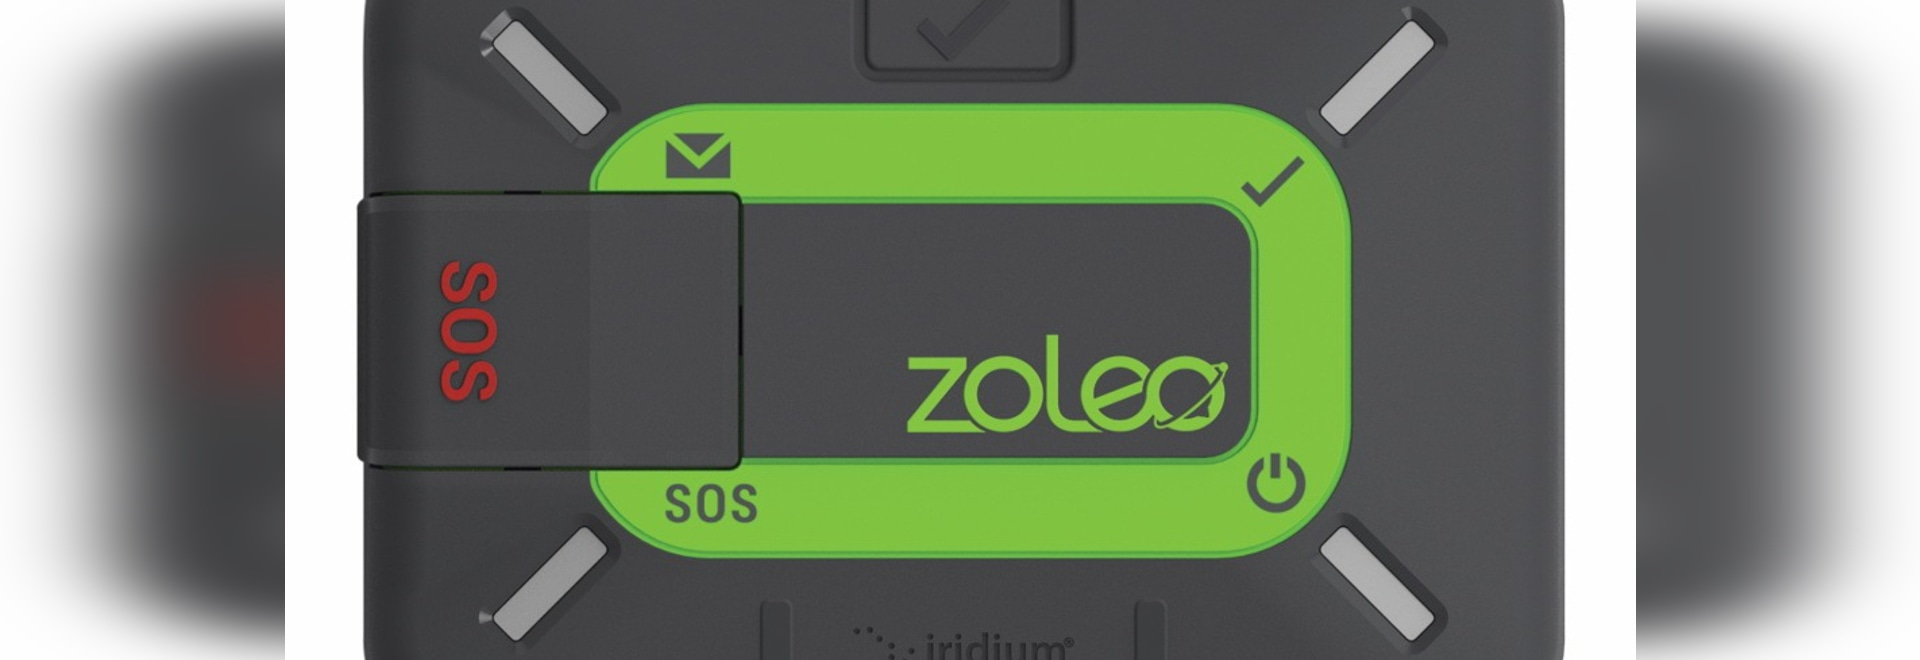 ZOLEO Inc. debuts the world's first truly seamless global messaging solution for smartphones